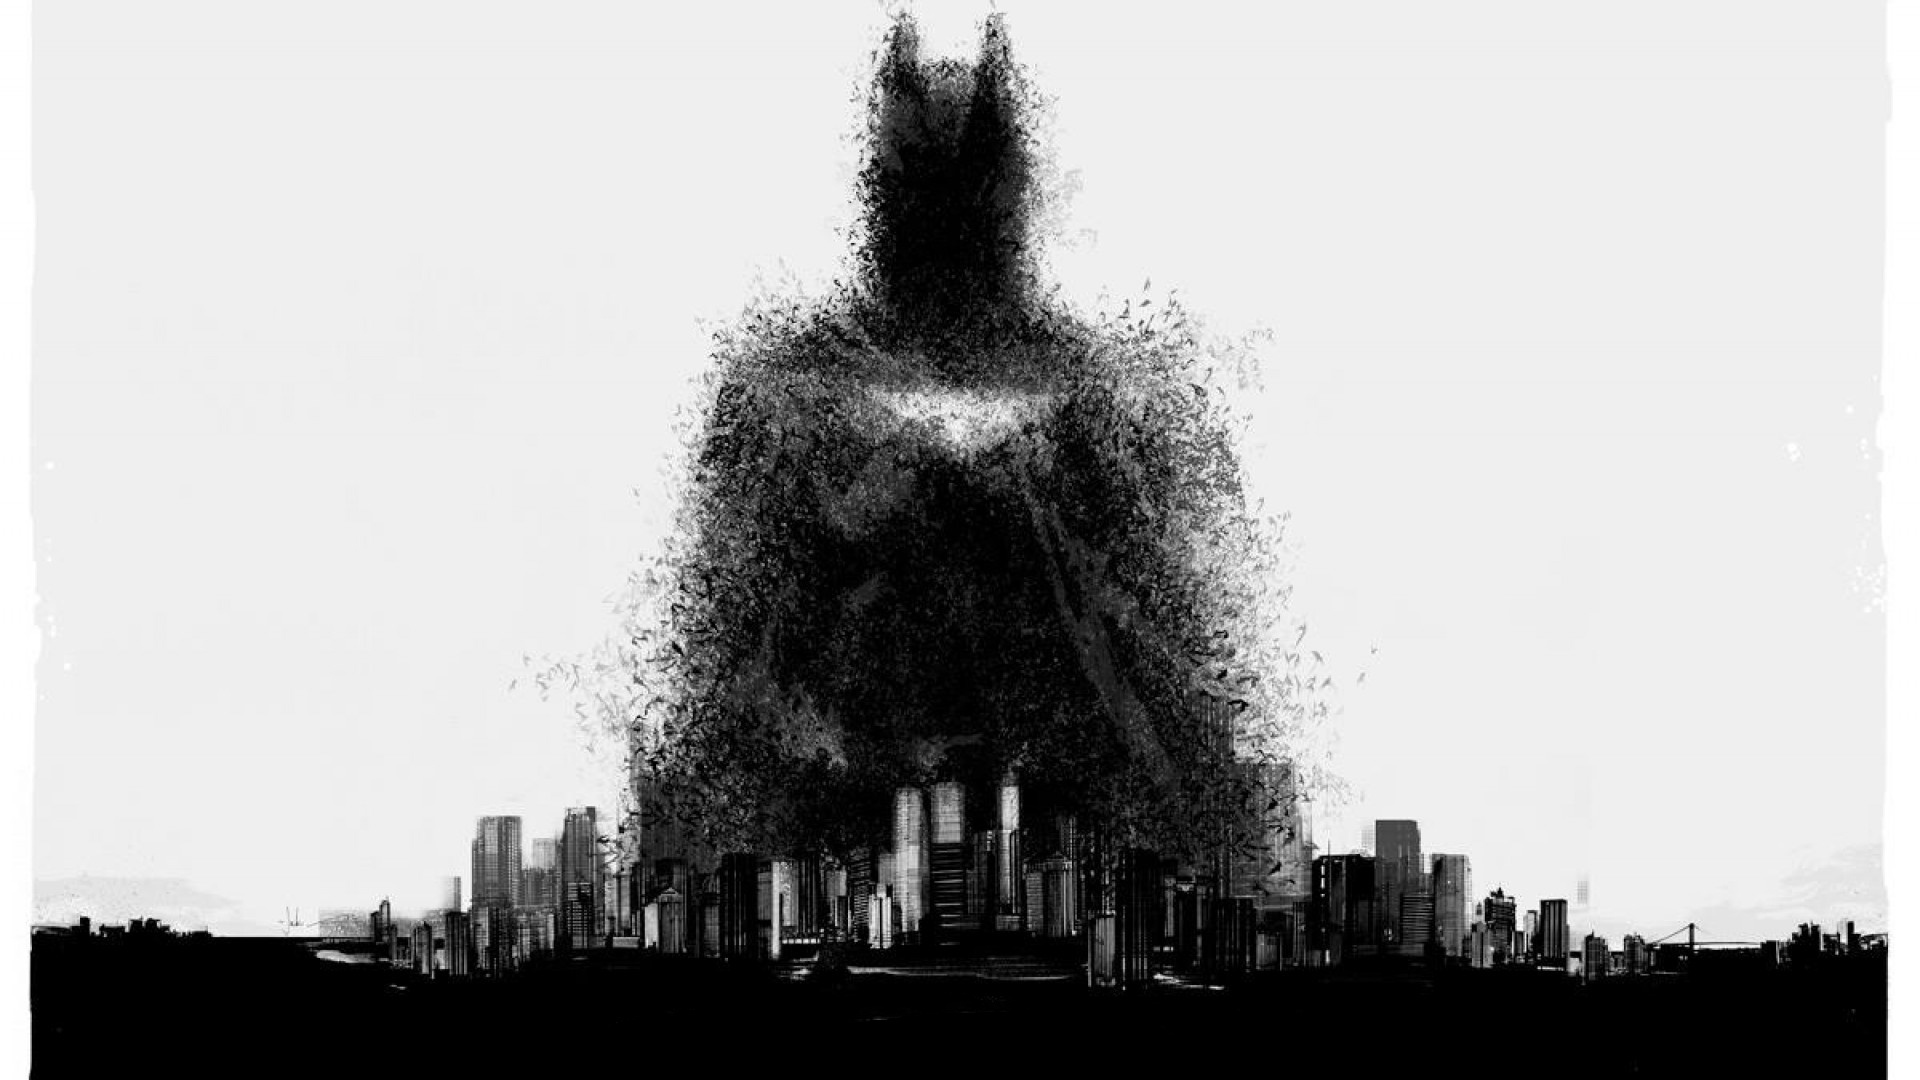 Batman Artwork Gotham City - Top 10 HD Batman Movie Desktop Wallpapers